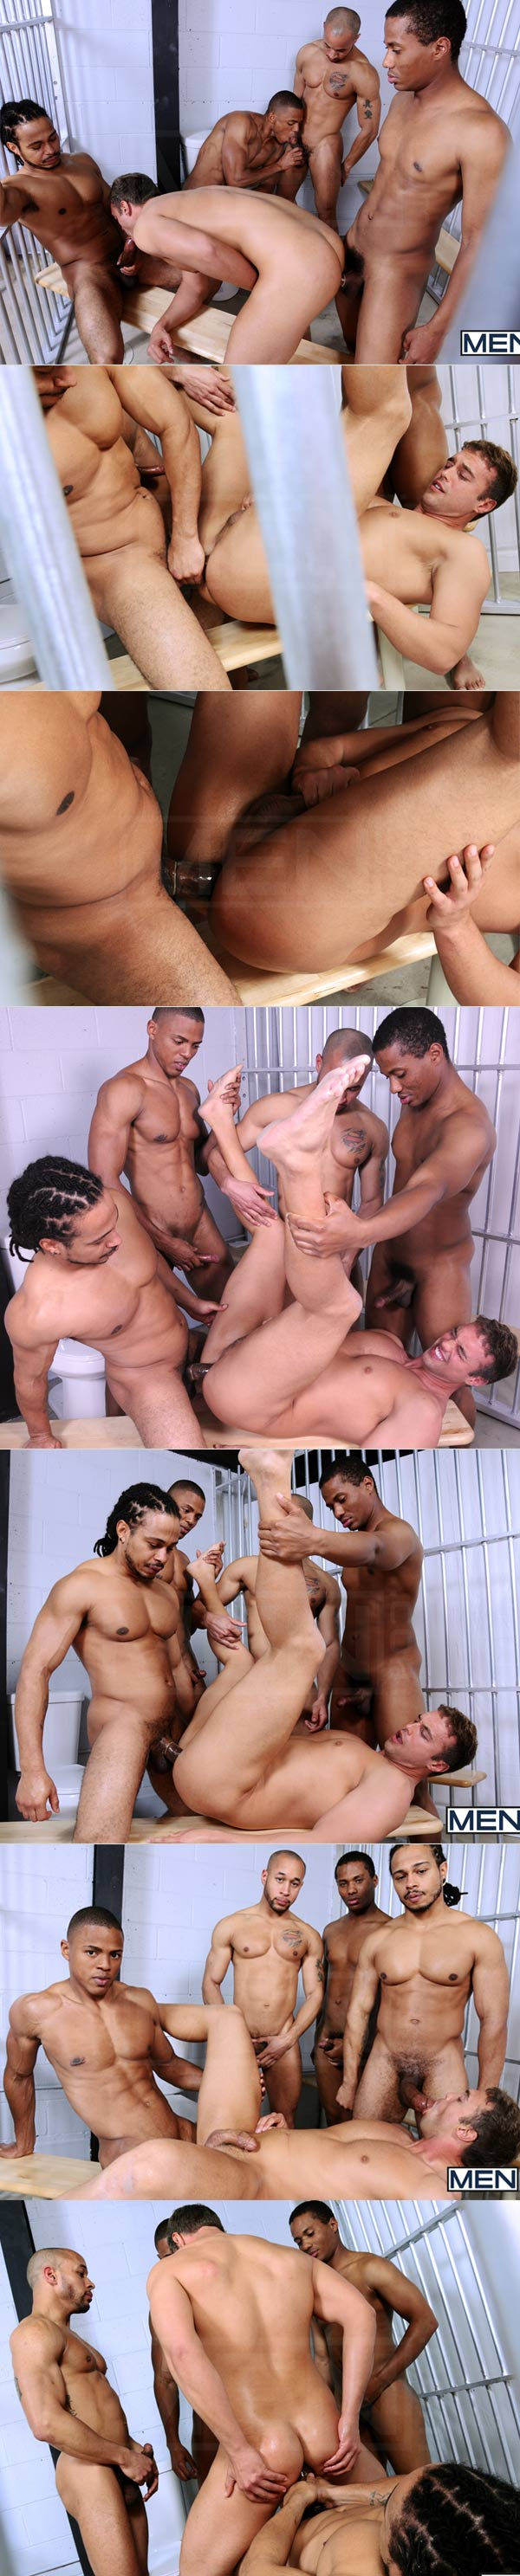 Rocco's Fantasy (Rocco Reed, Lawson Kane, Castro Supreme, Paulo Thiago & Brett Johnson) at JizzOrgy